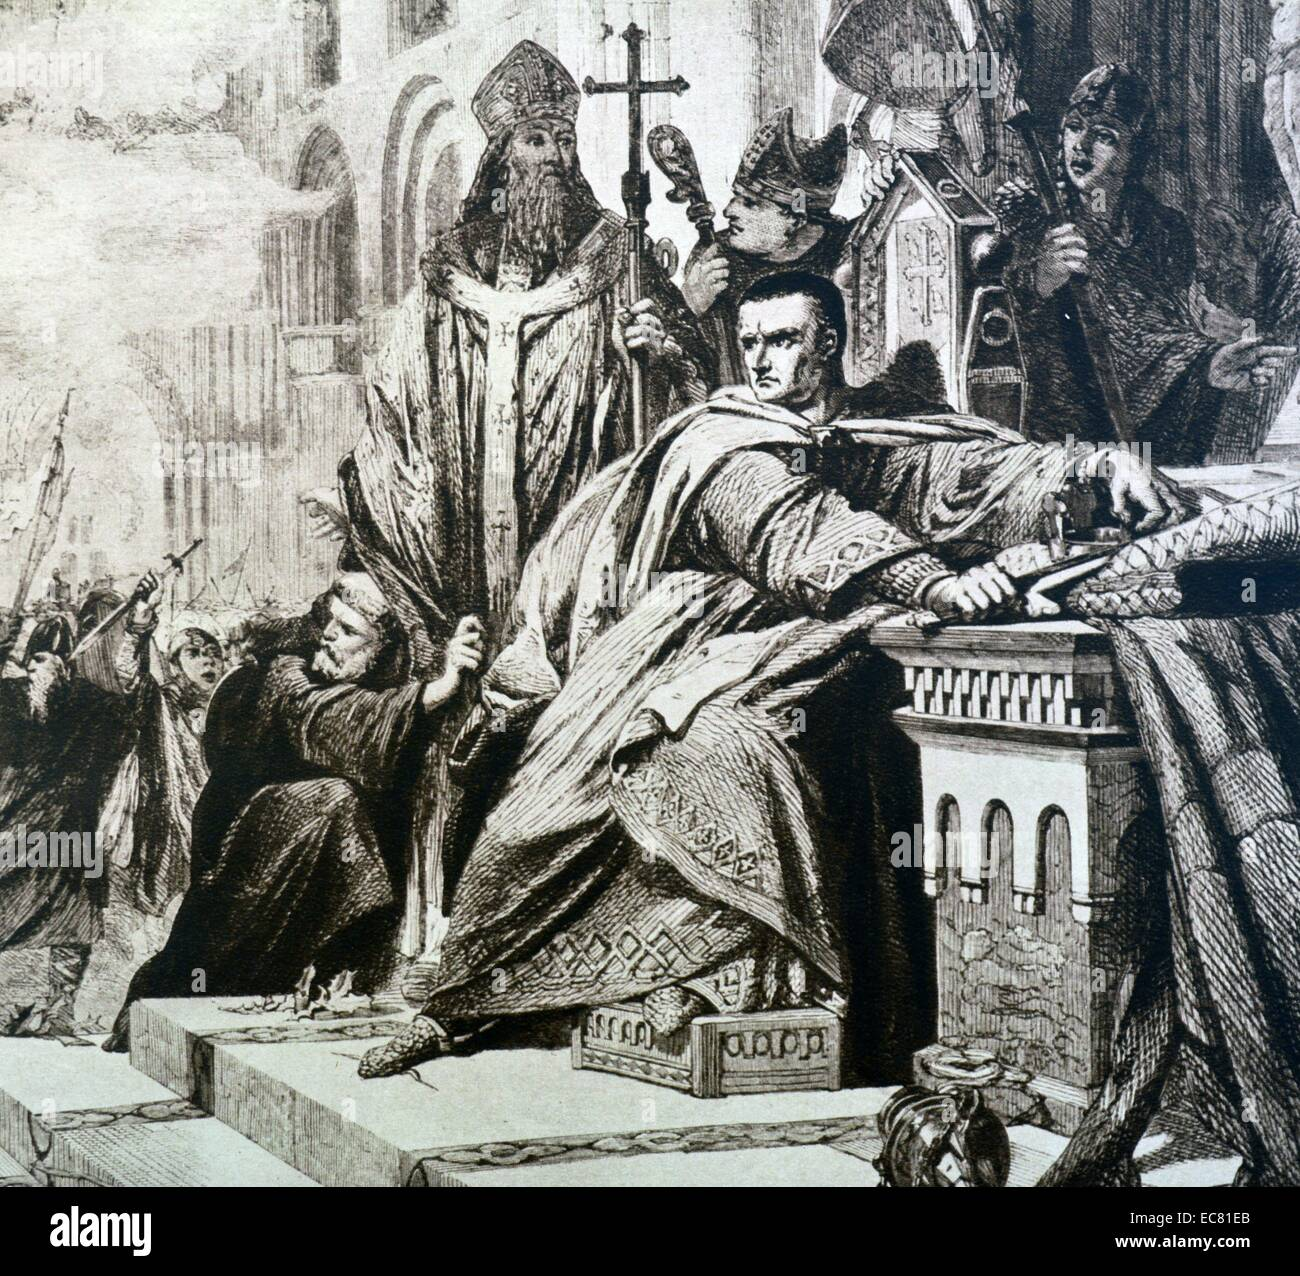 Coronation of William I (The Conqueror) as King of England Stock Photo